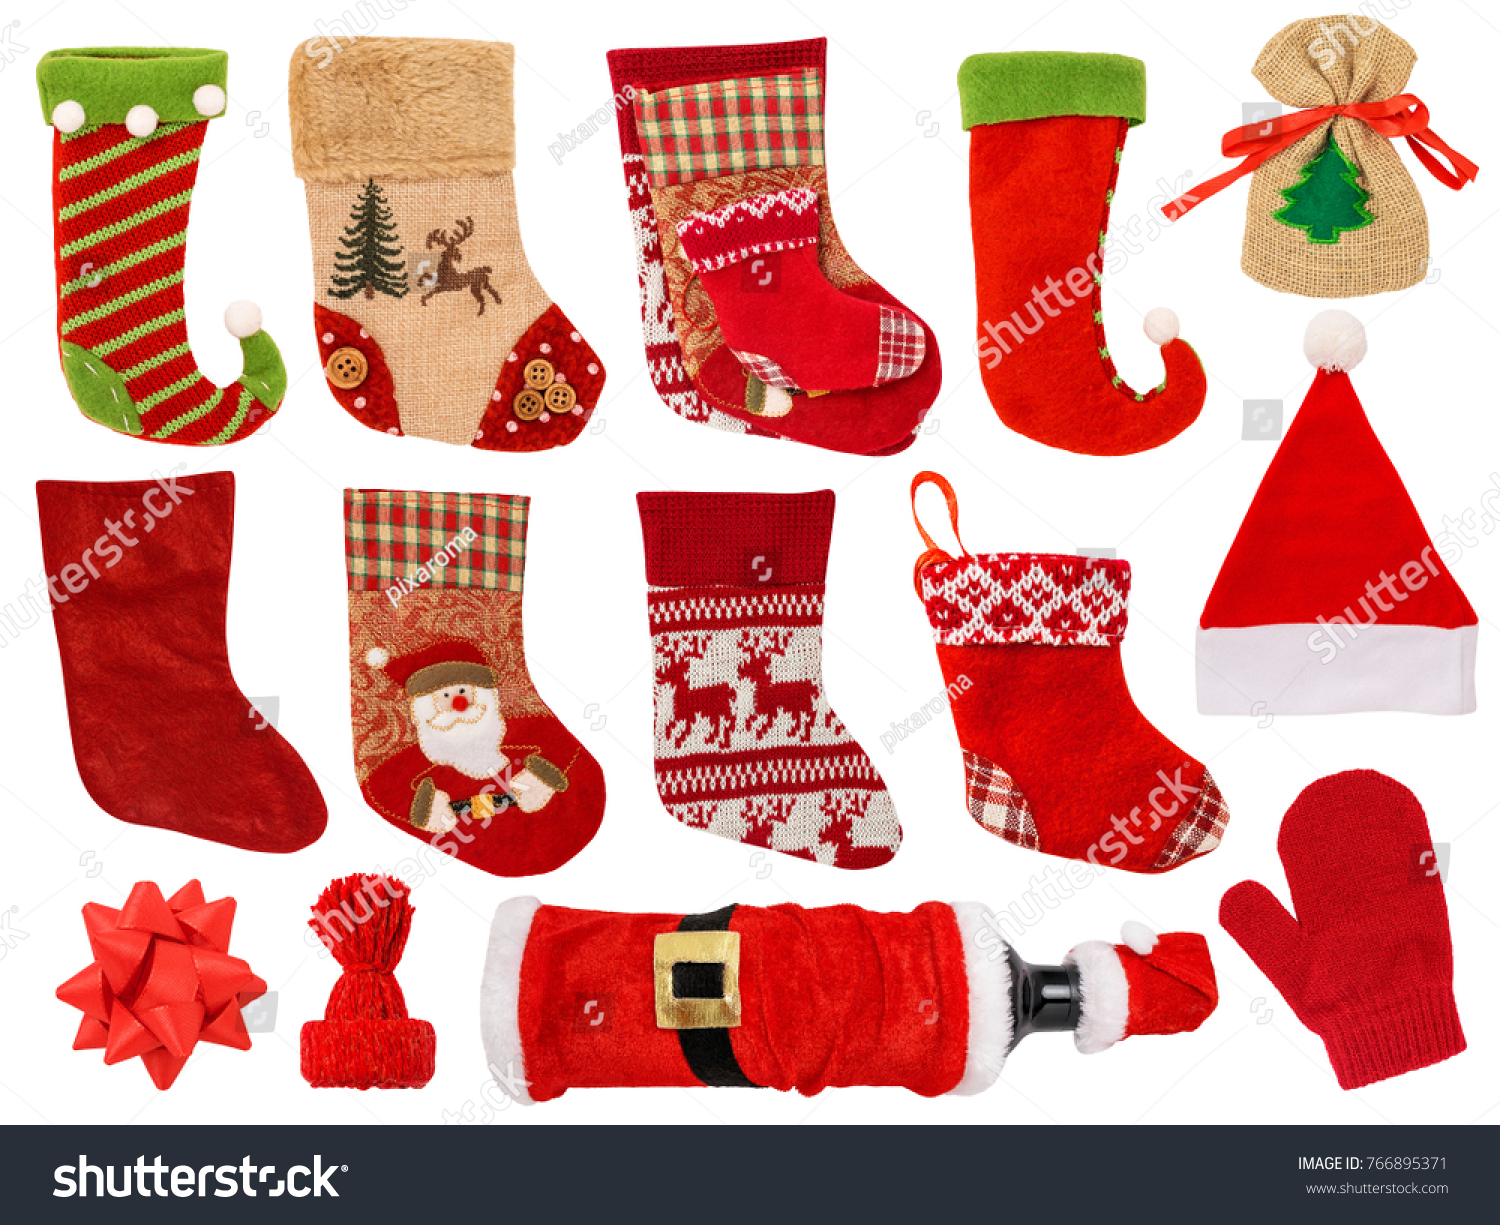 c7722b080cc Christmas Stocking Isolated on White Background. Contains different types  of stocking